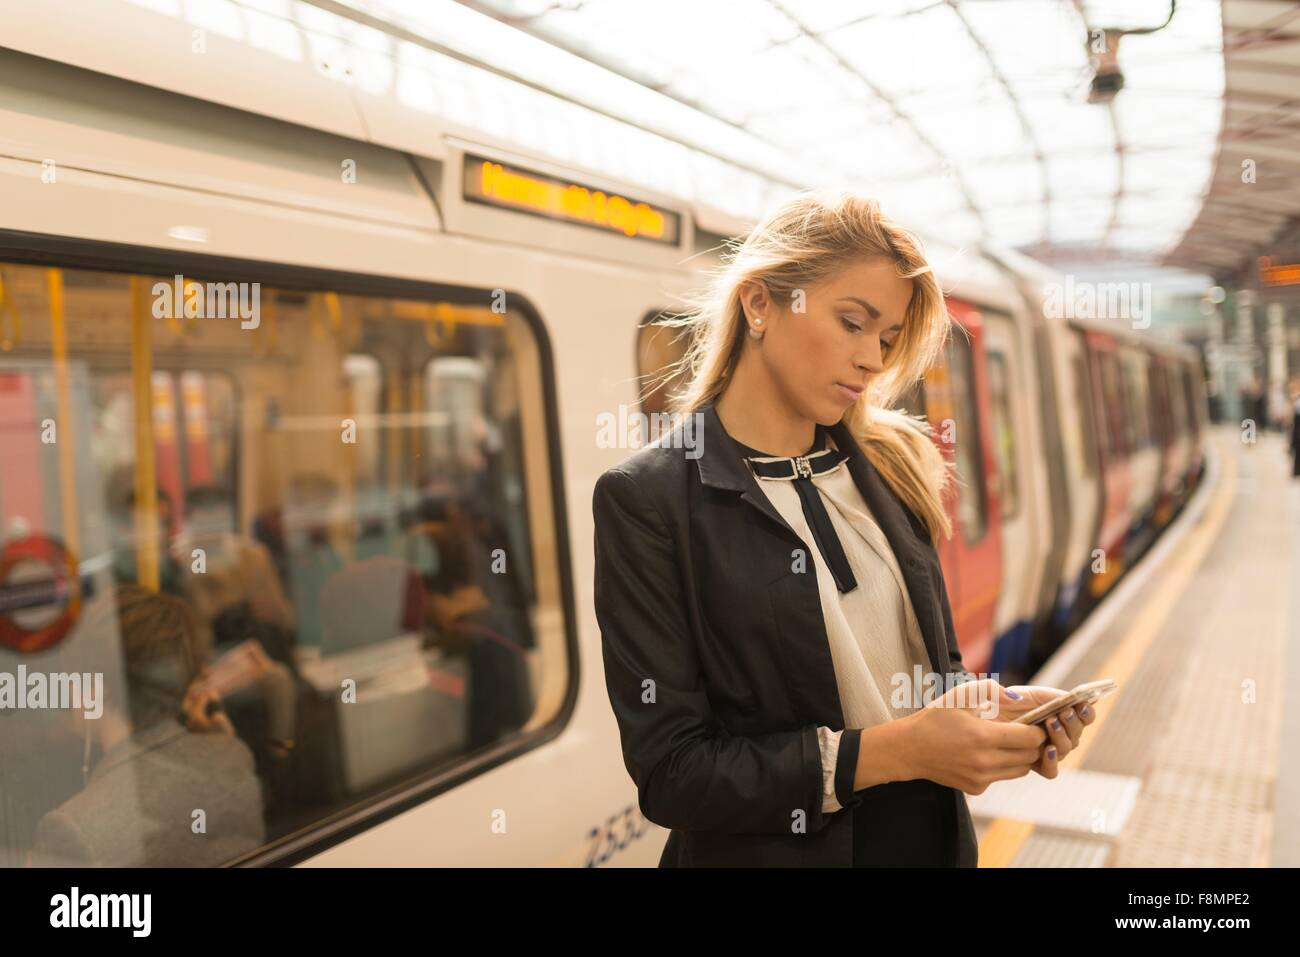 Business woman texting on platform, Underground station, London, UK - Stock Image